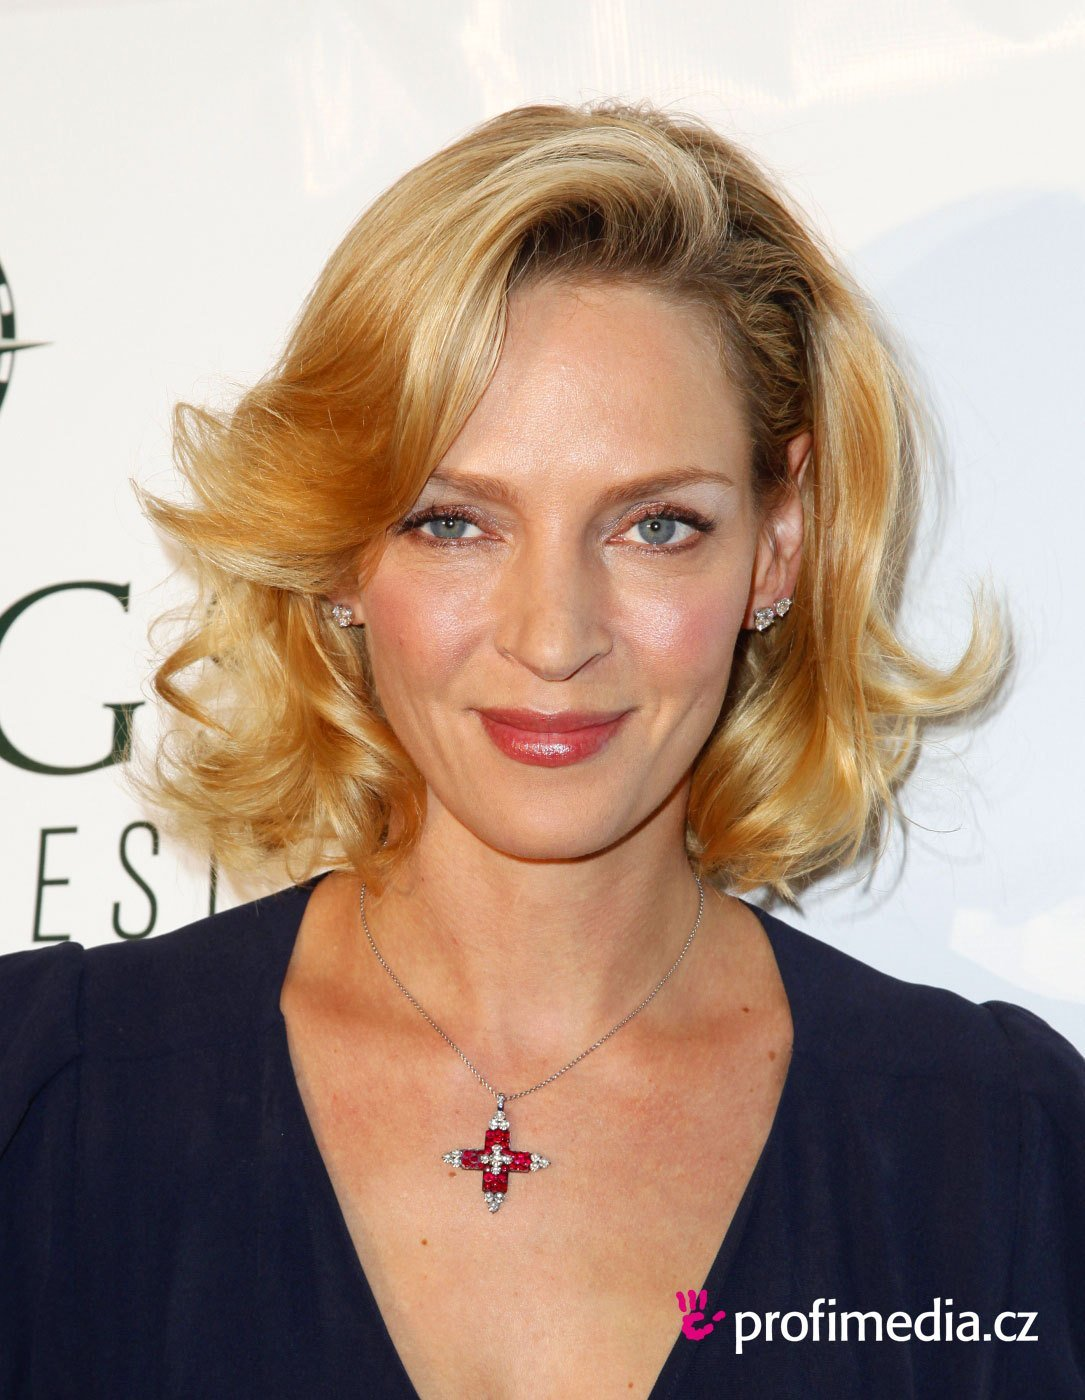 The Best Uma Thurman Hairstyle Easyhairstyler Pictures